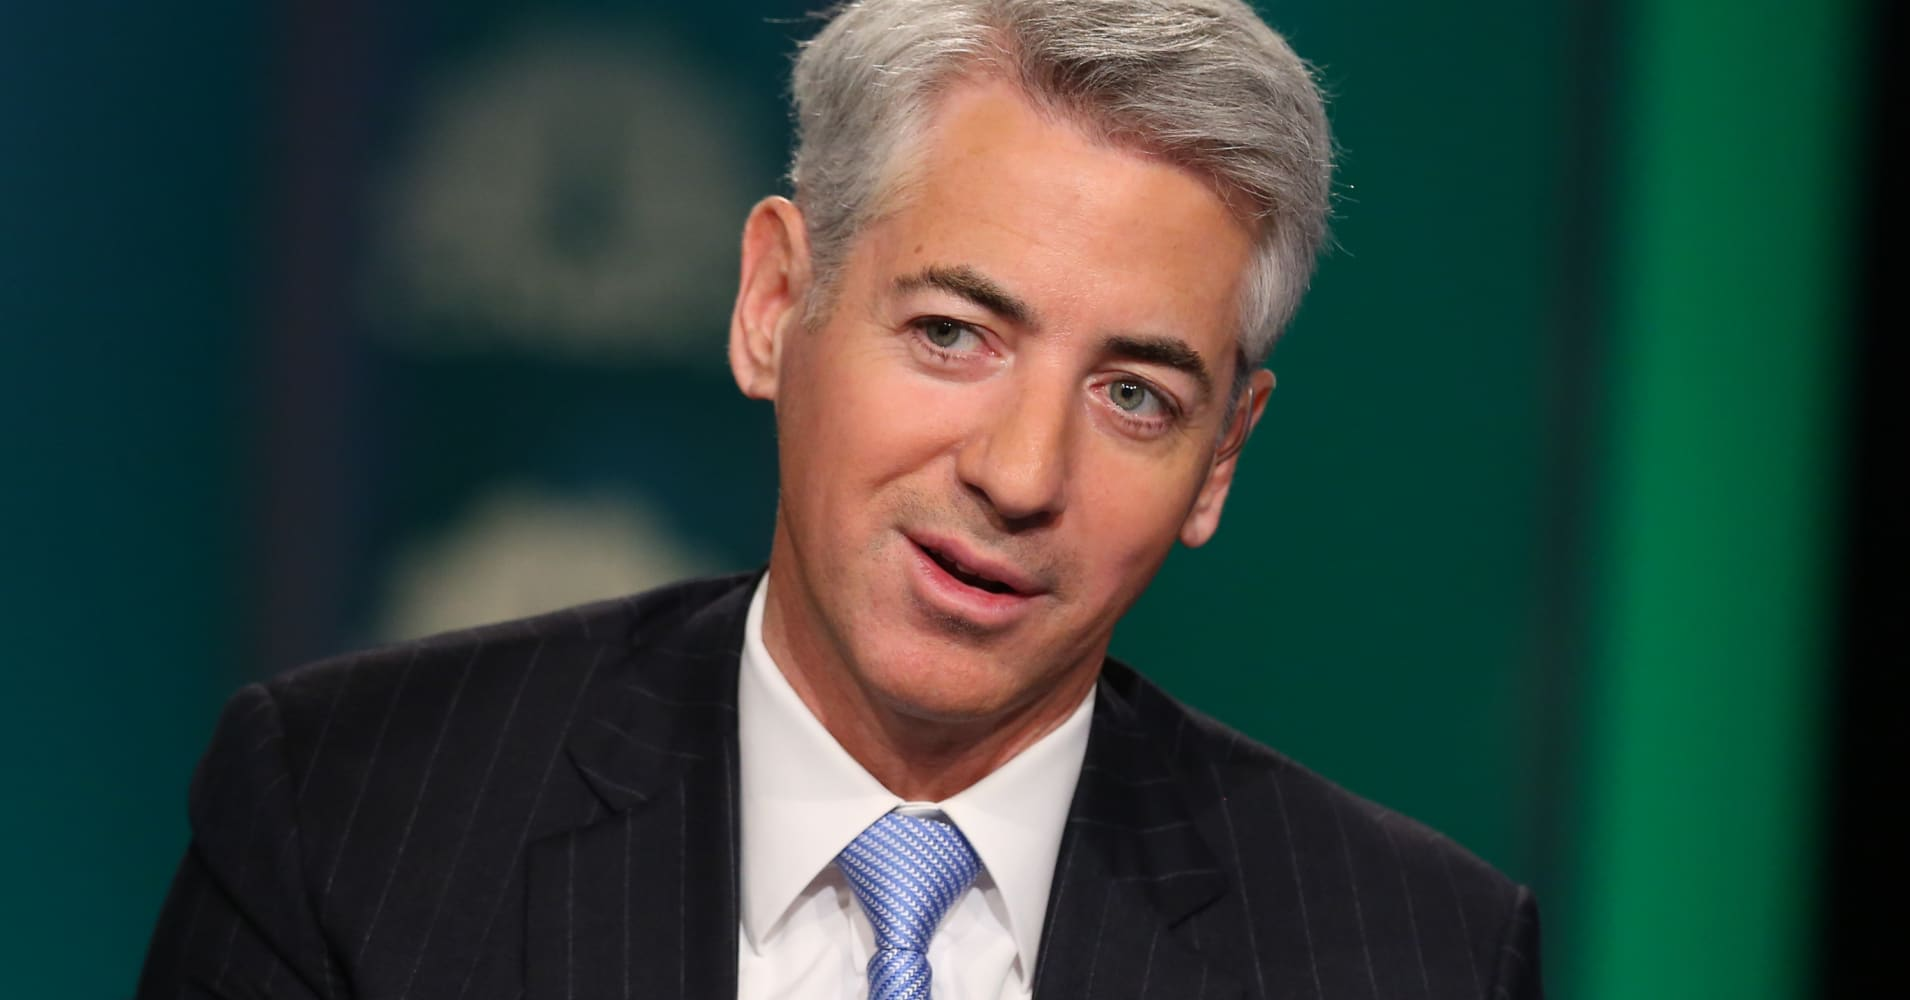 William Ackman's Pershing Square builds roughly $1 billion stake in Lowe's: Report